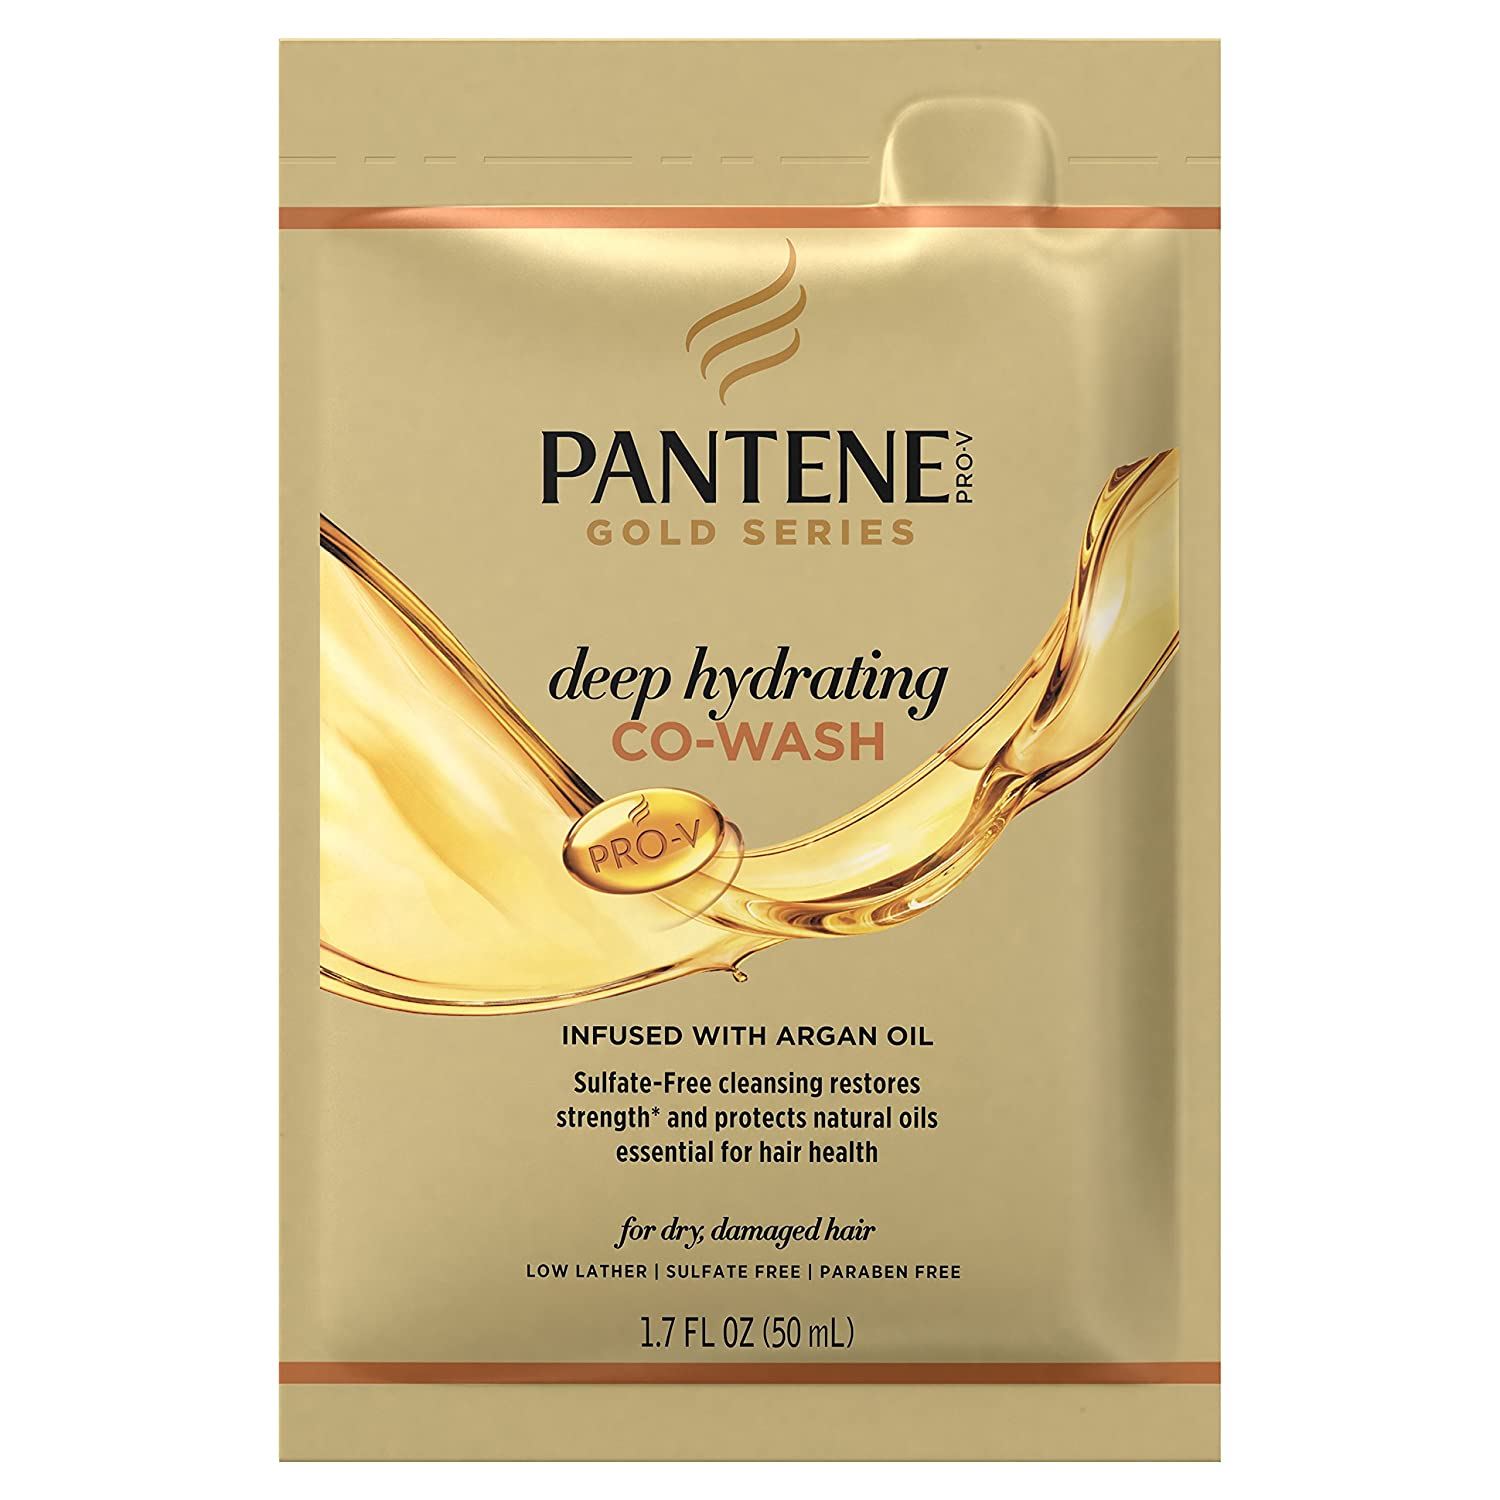 Pantene Pro-V Gold Series Deep Hydrating Co-Wash, 1.7 oz for African American, Ethnic and Curly Hair Care